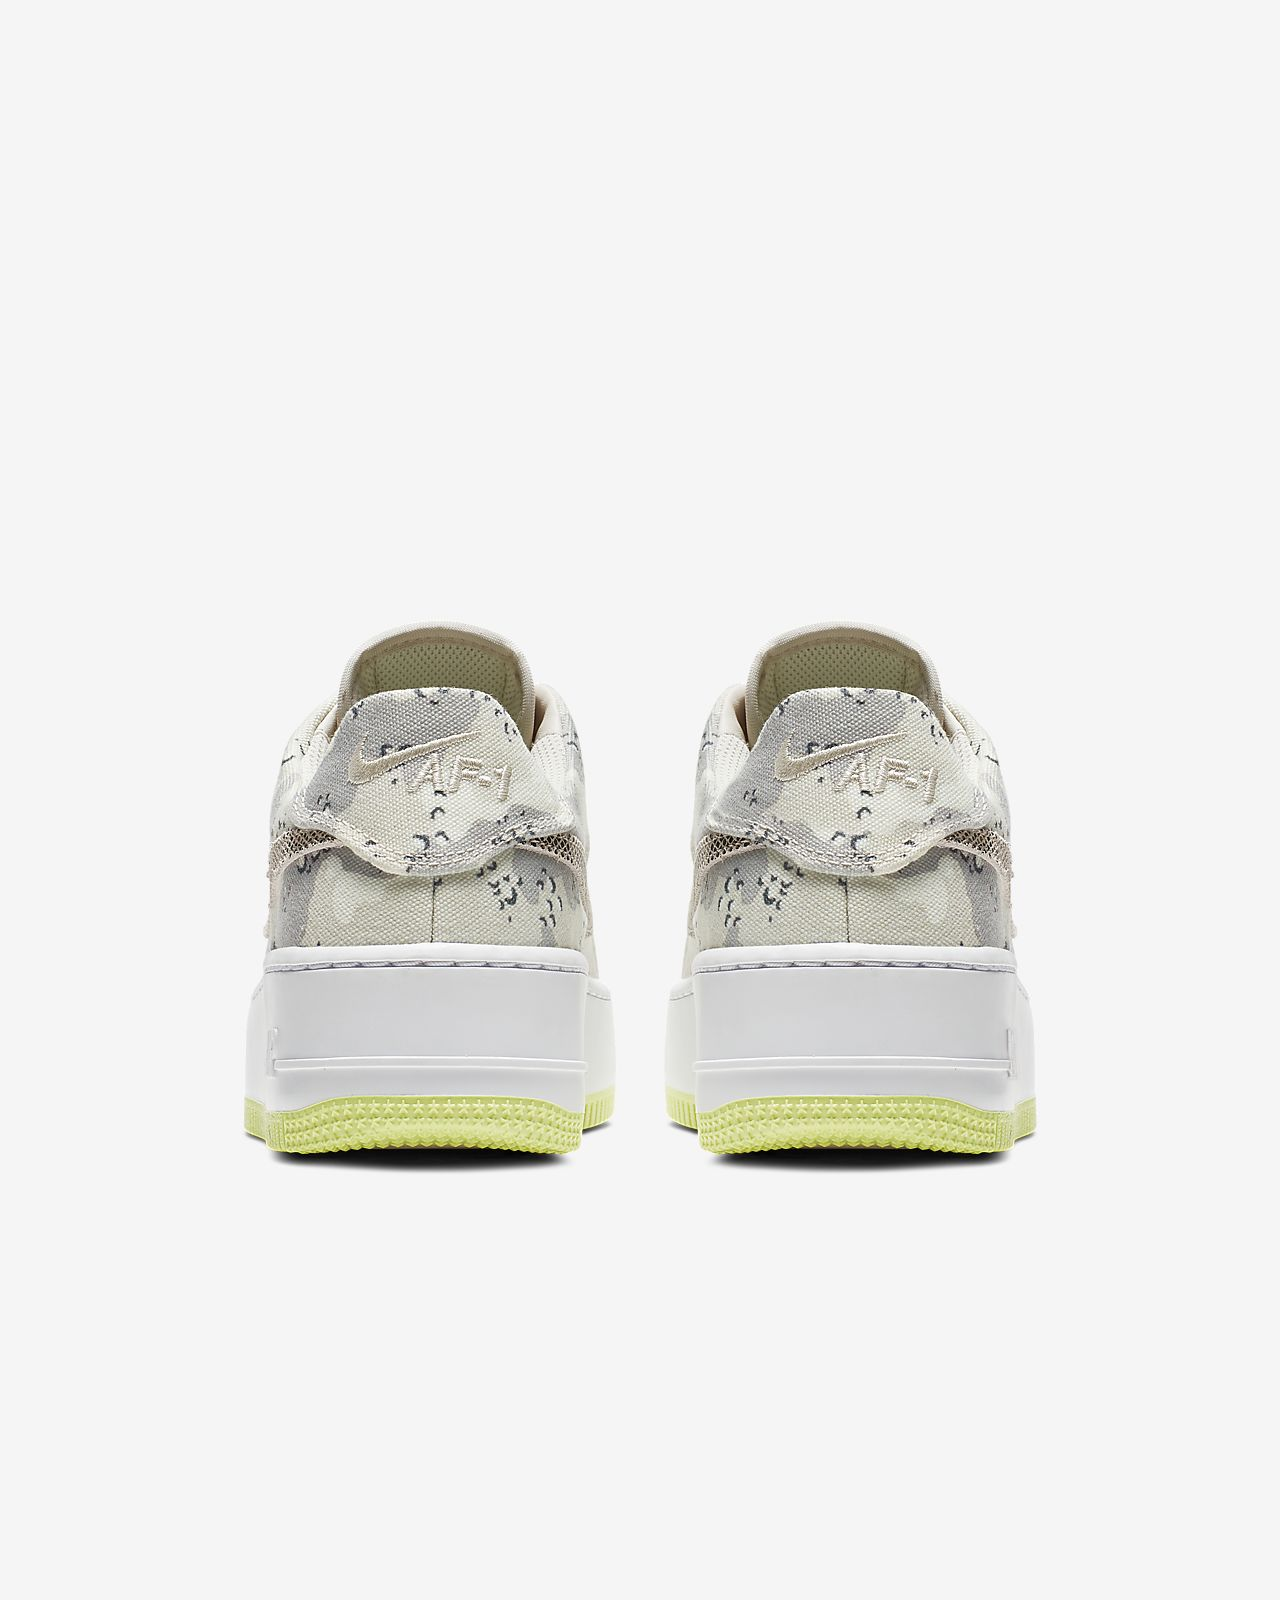 nike camo shoes air force low